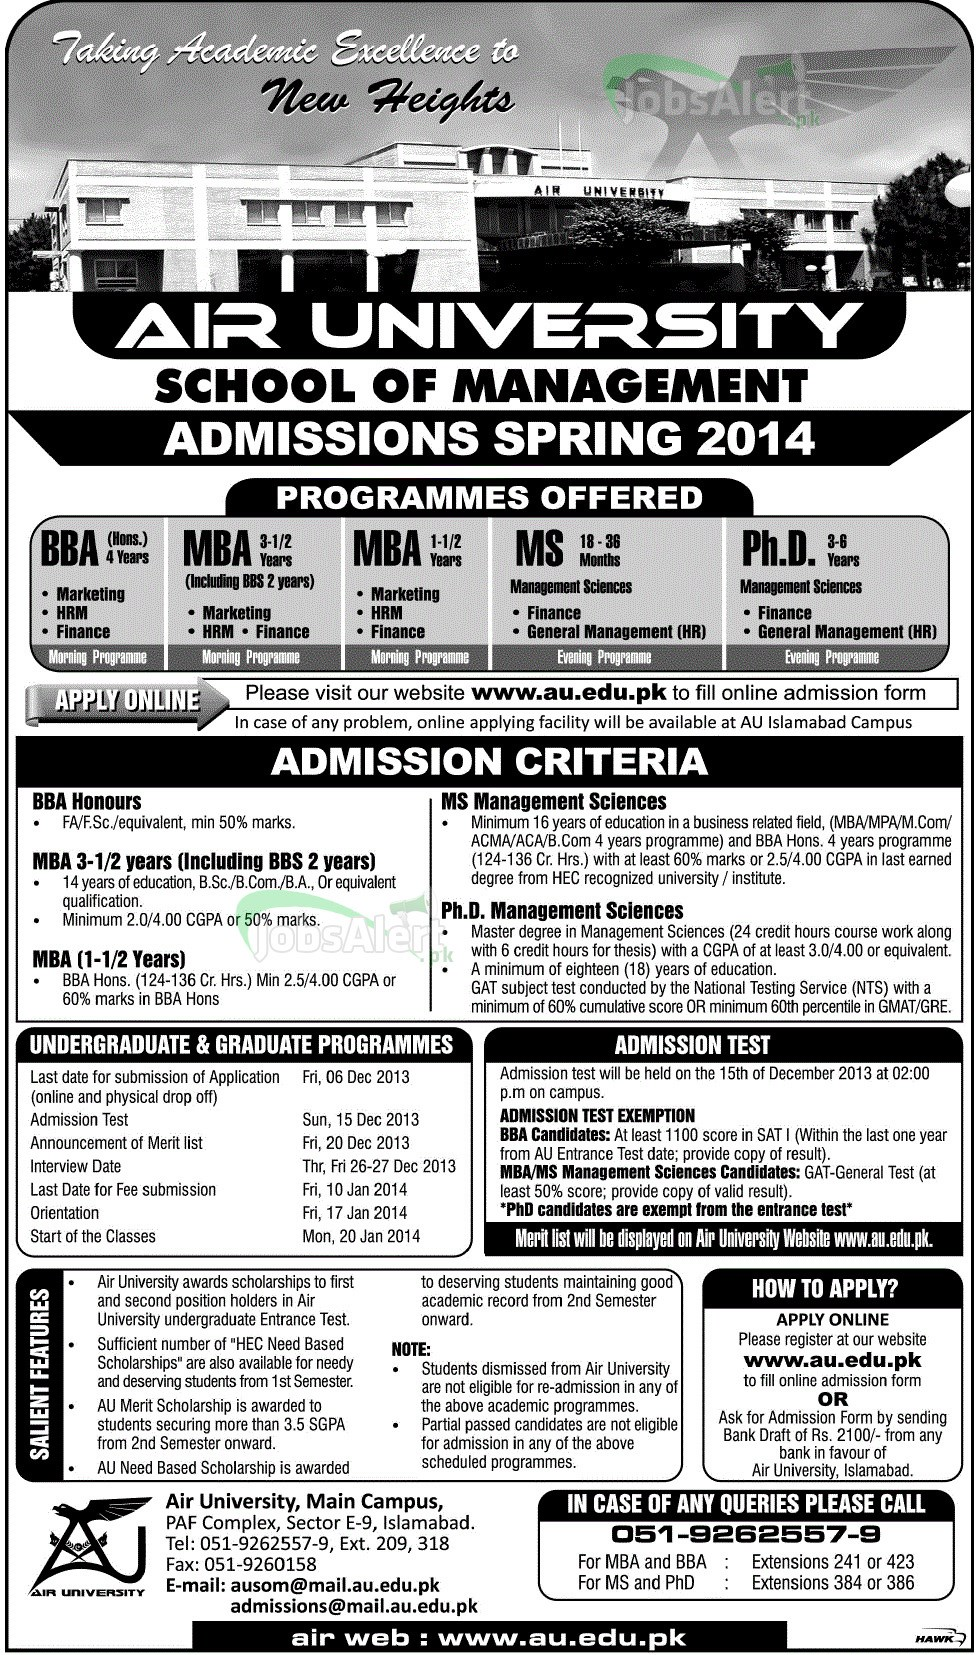 Air University Admissions 2014 in BBA, MBA, MS, PhD